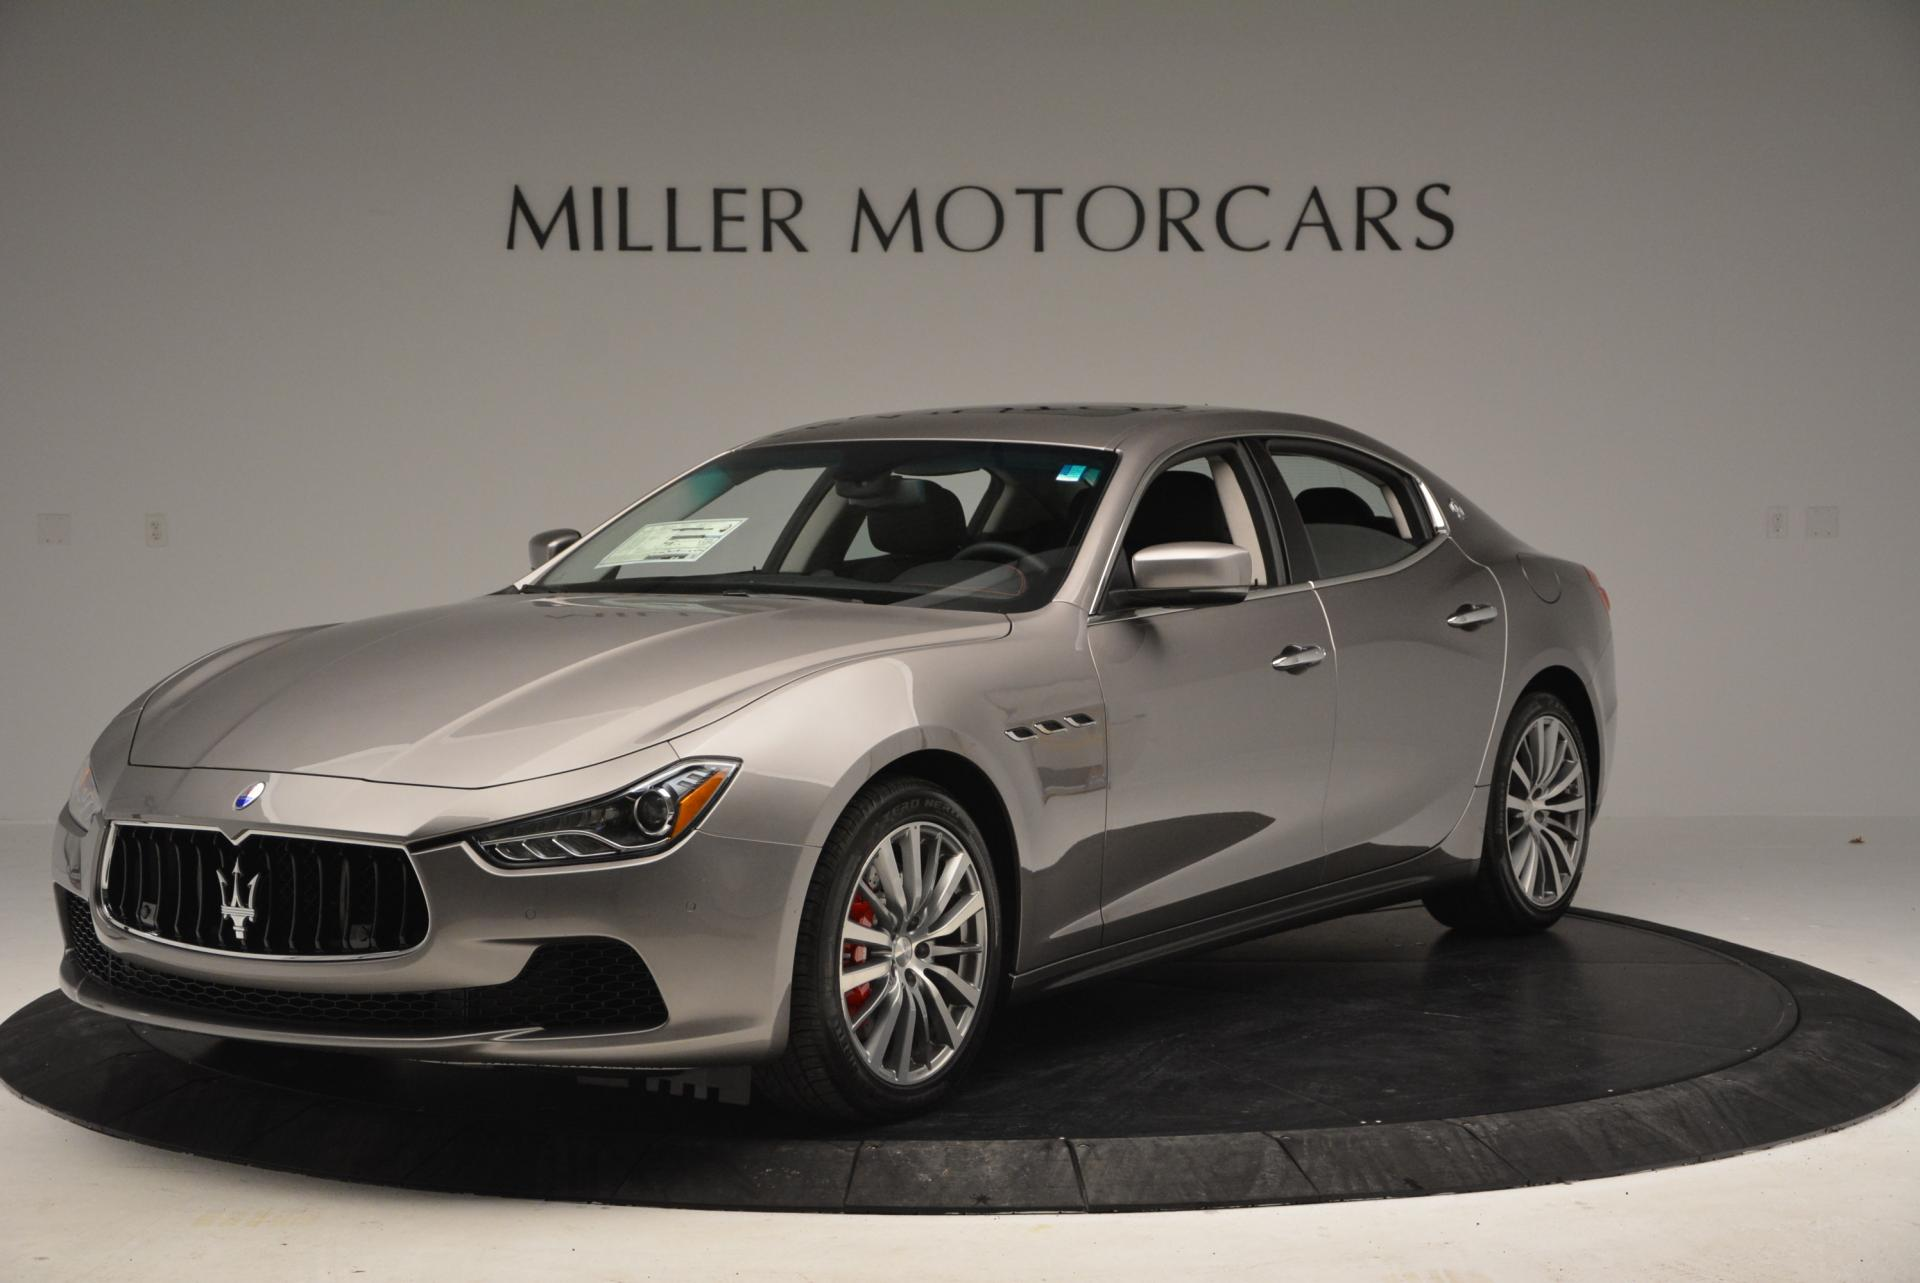 New 2016 Maserati Ghibli S Q4 For Sale In Greenwich, CT 177_main